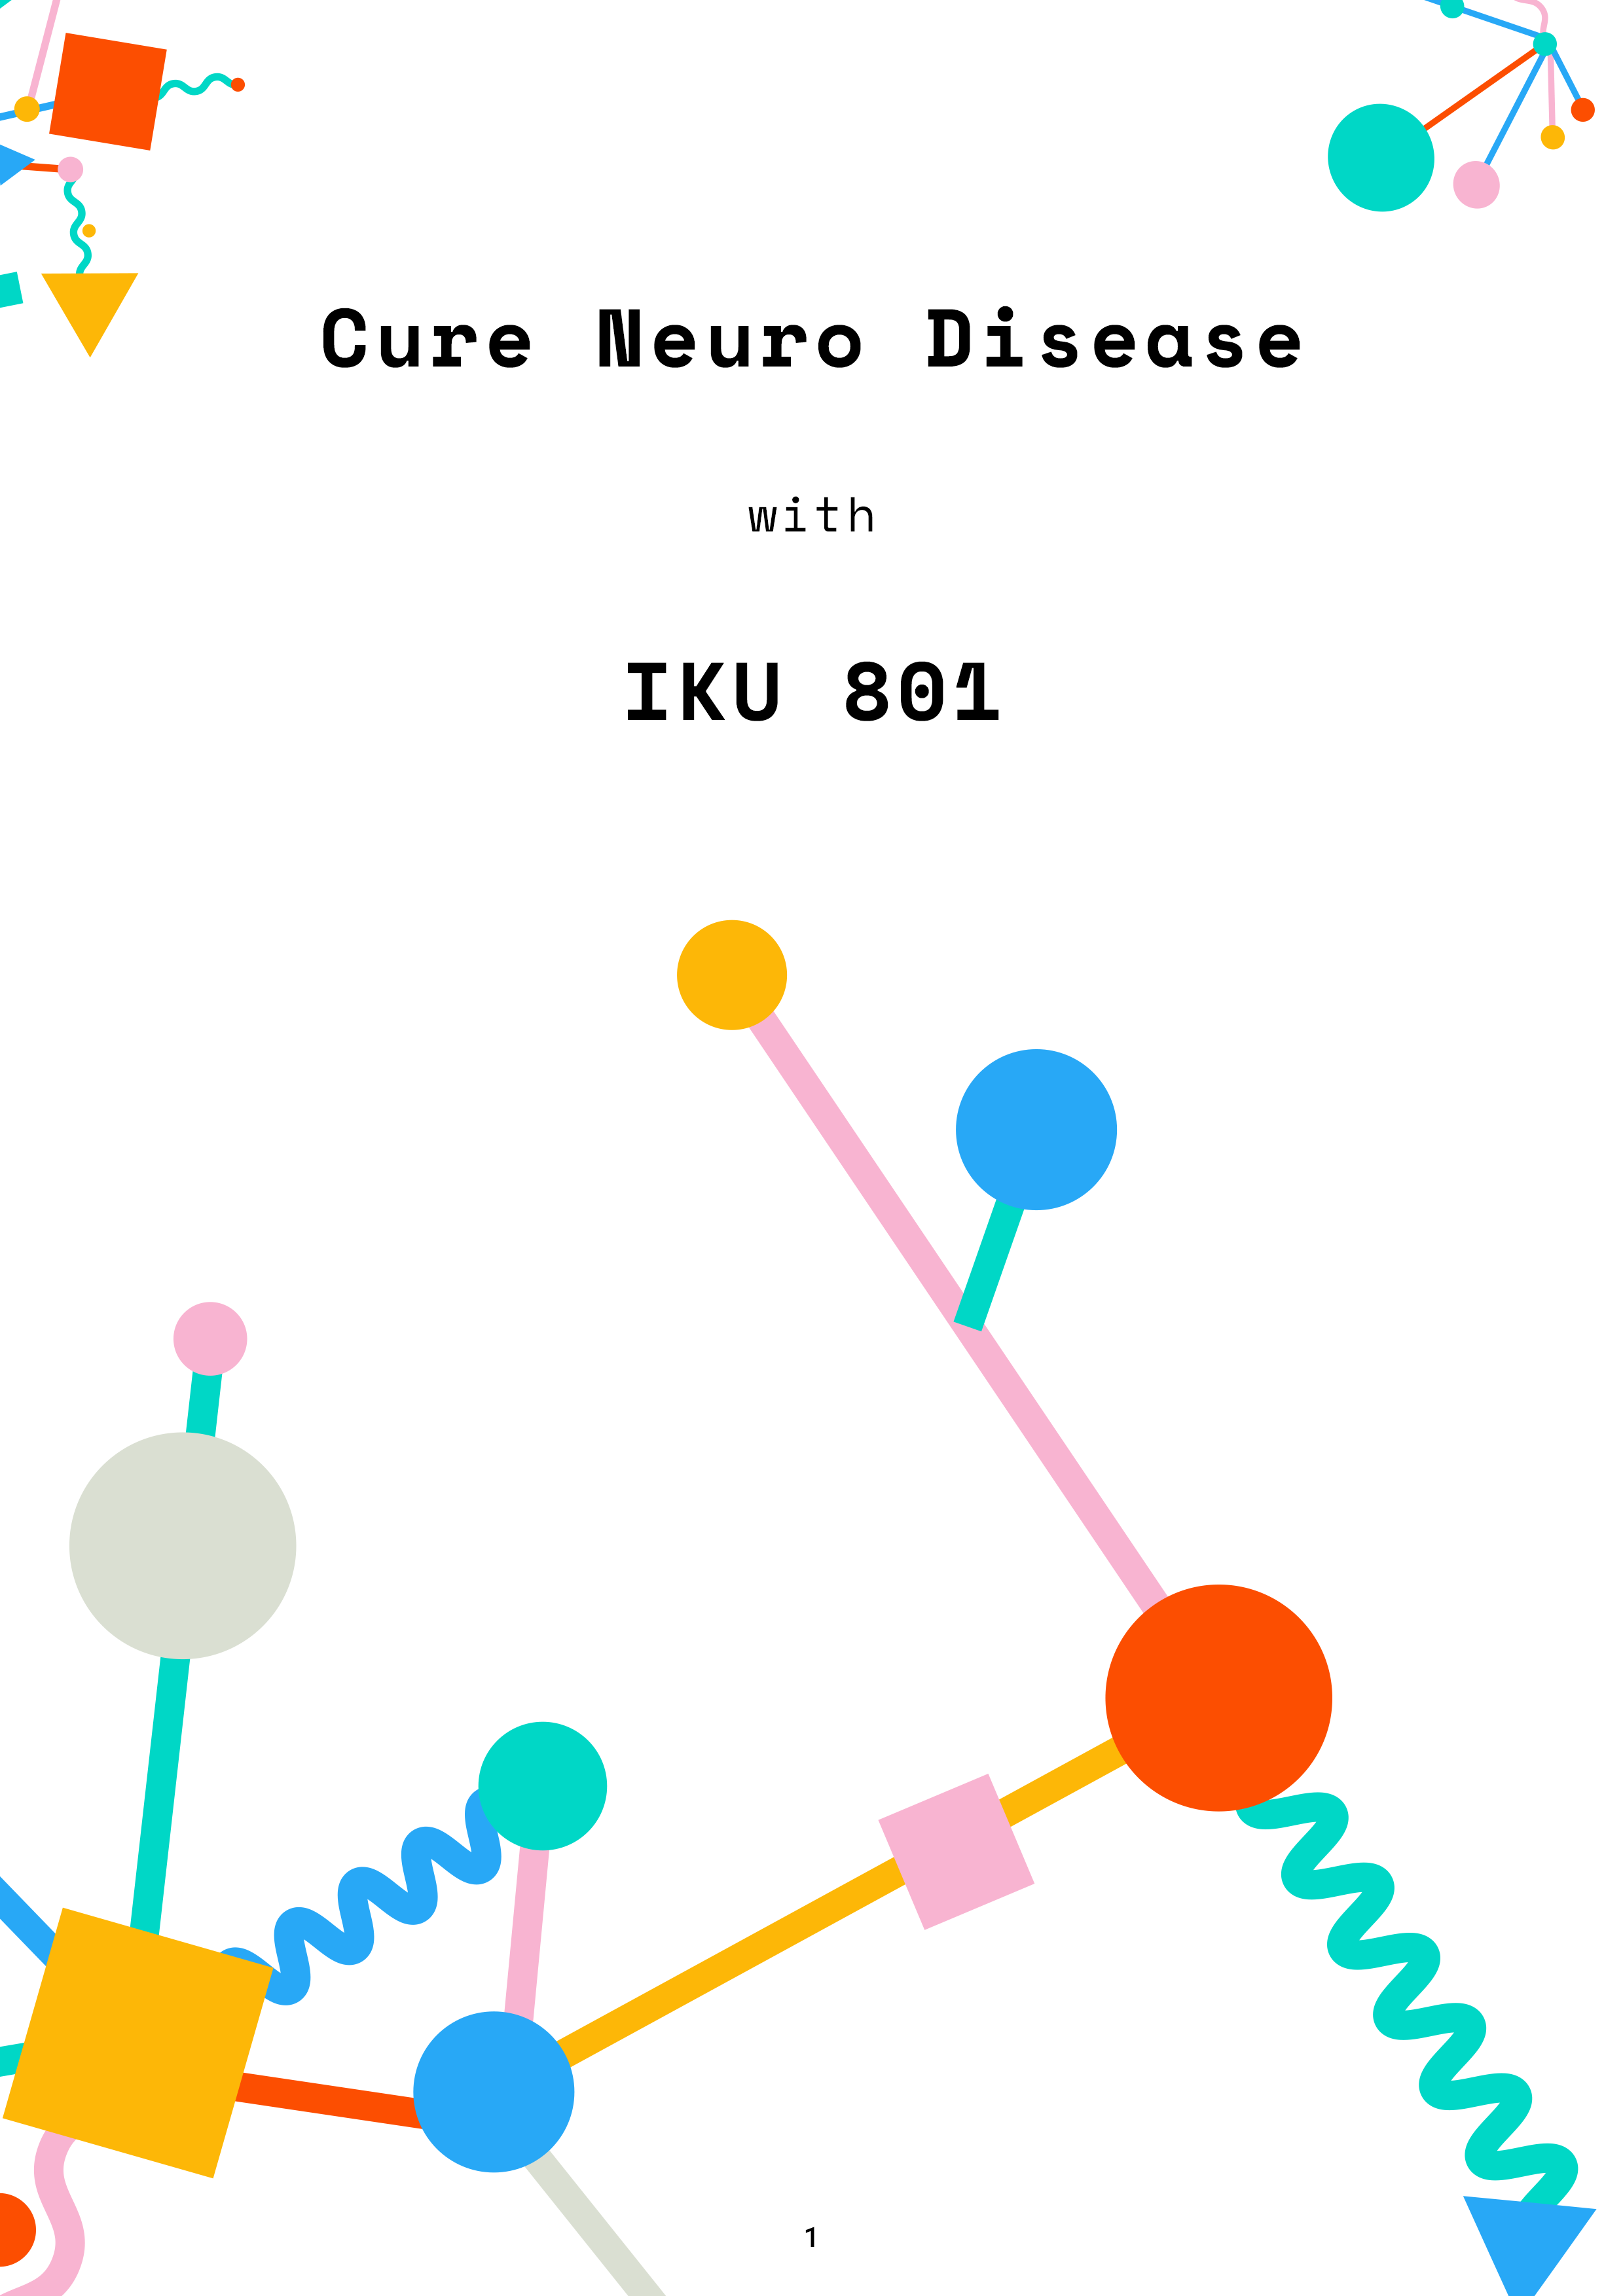 IKU 801 - Cure Neuro Disease.png